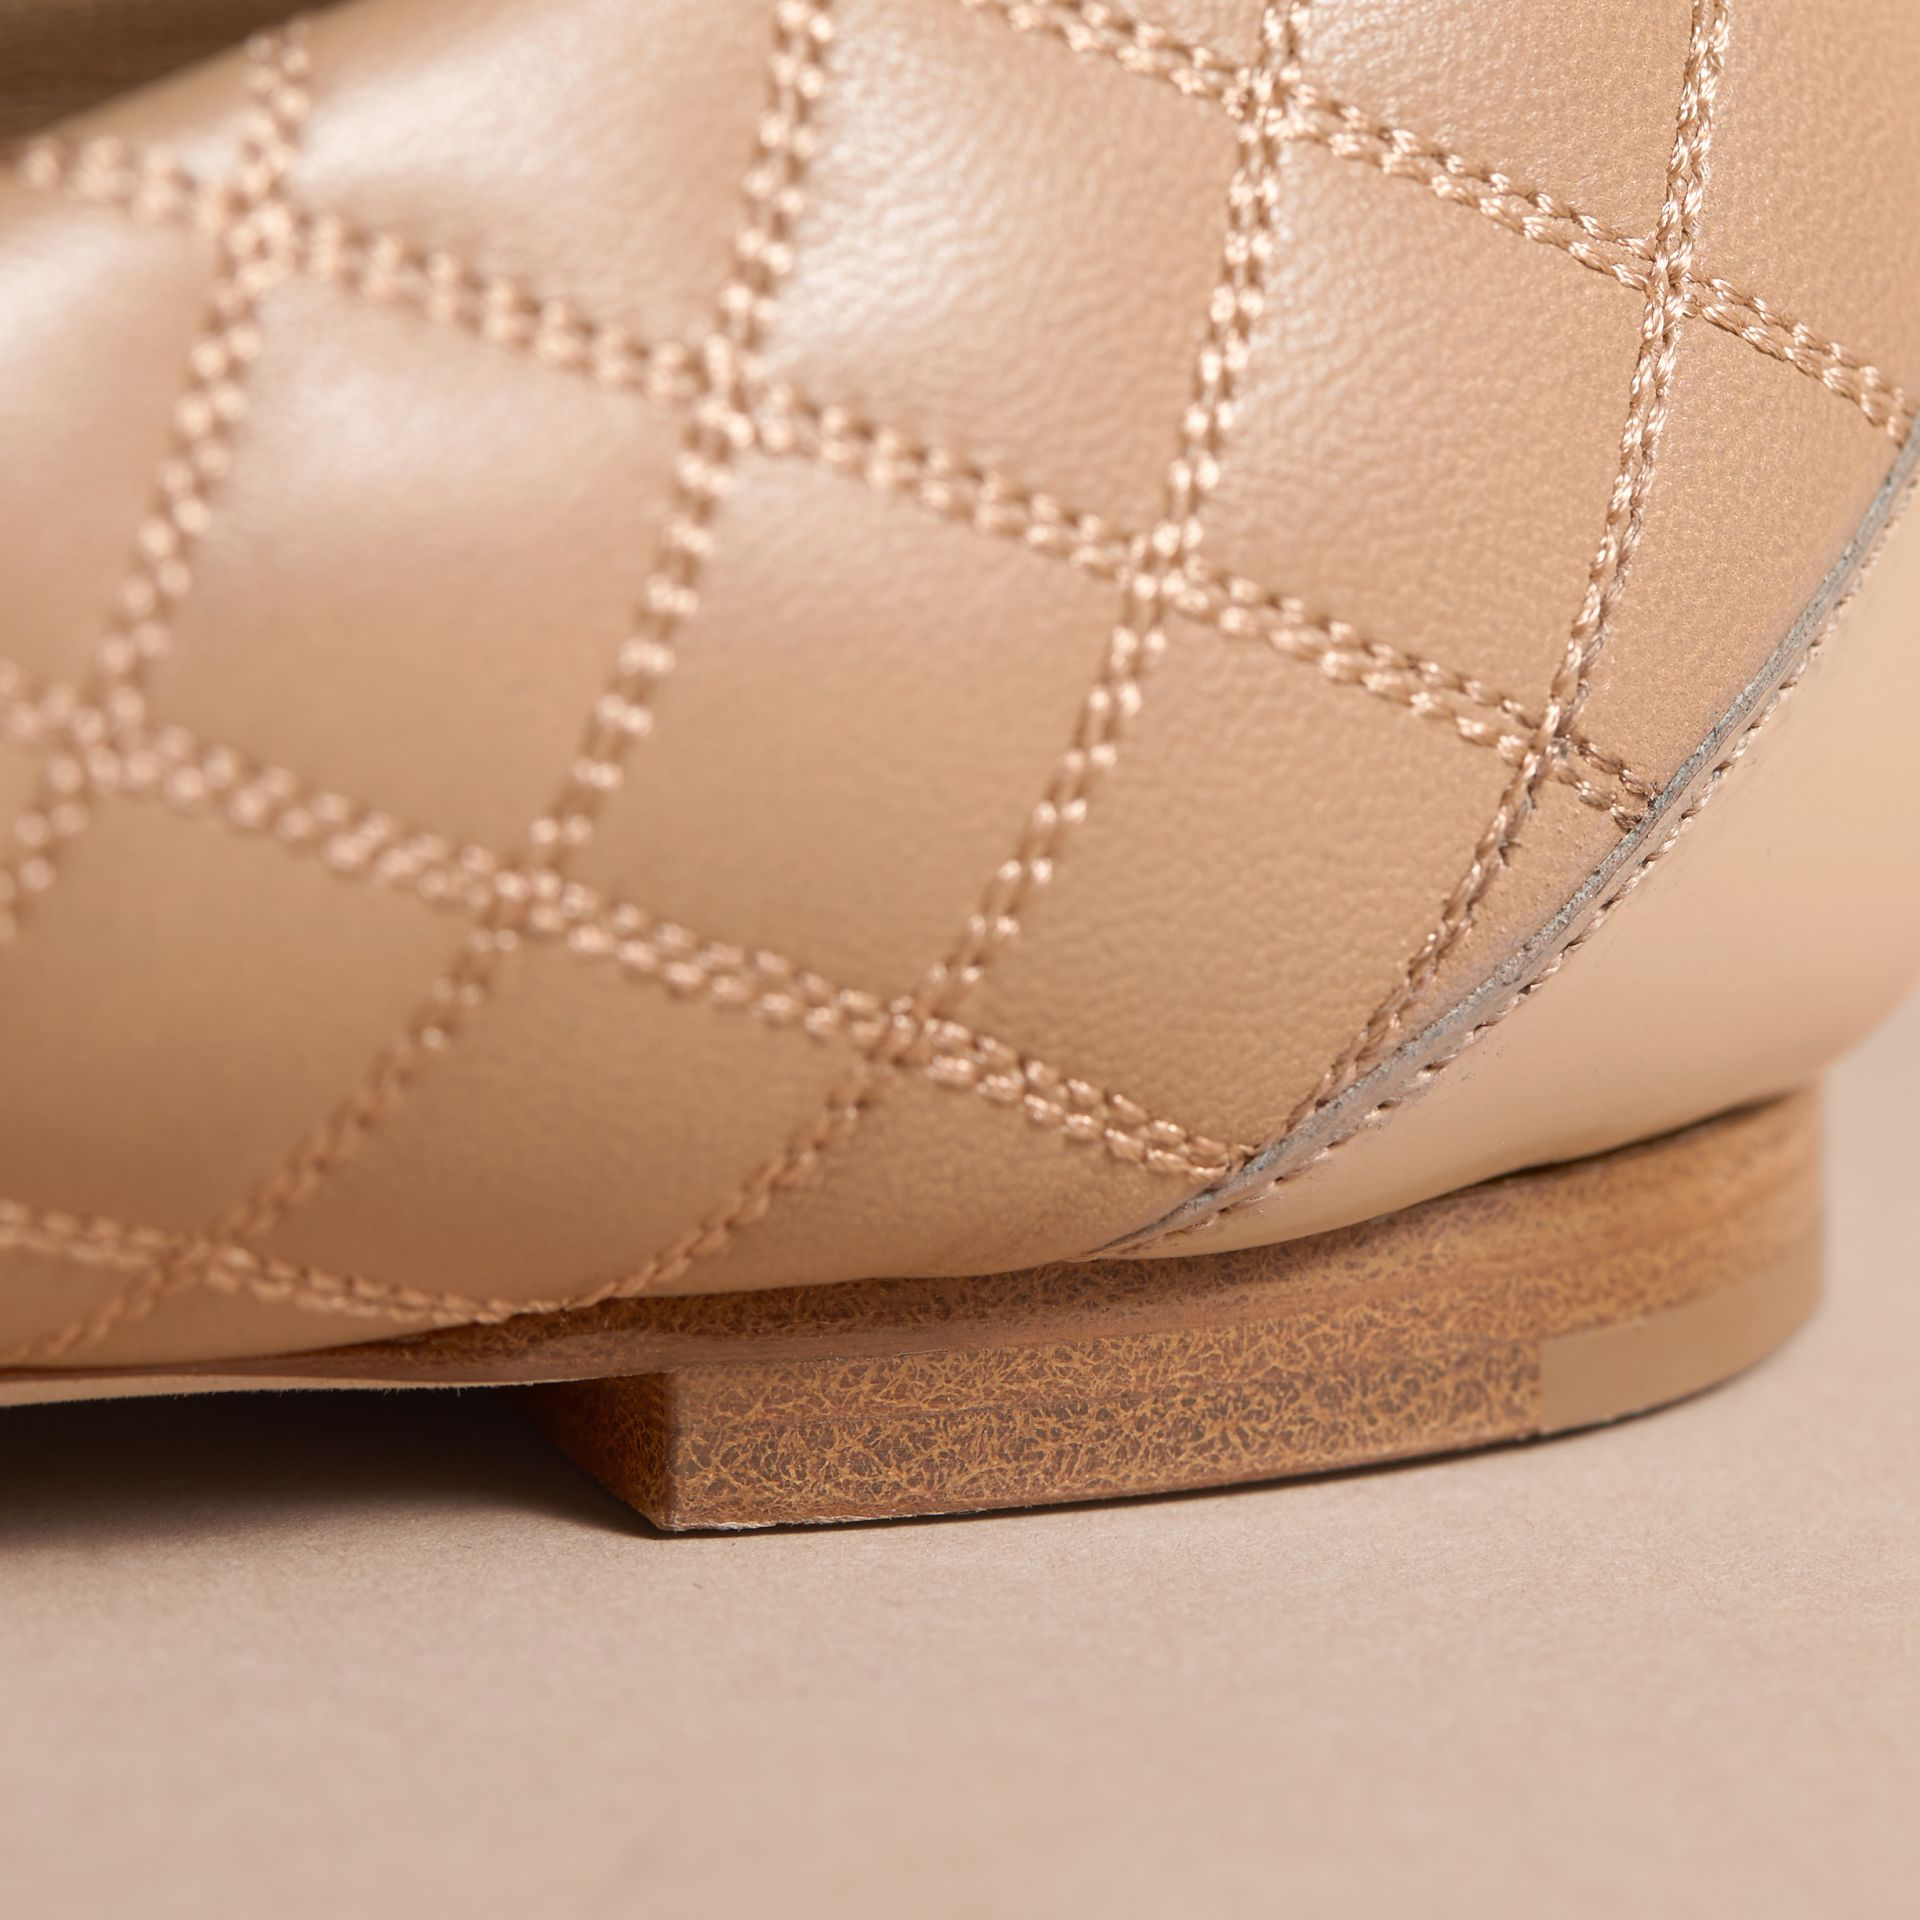 Buckle Detail Quilted Lambskin Leather Ballerinas in Honey - Women | Burberry - gallery image 5